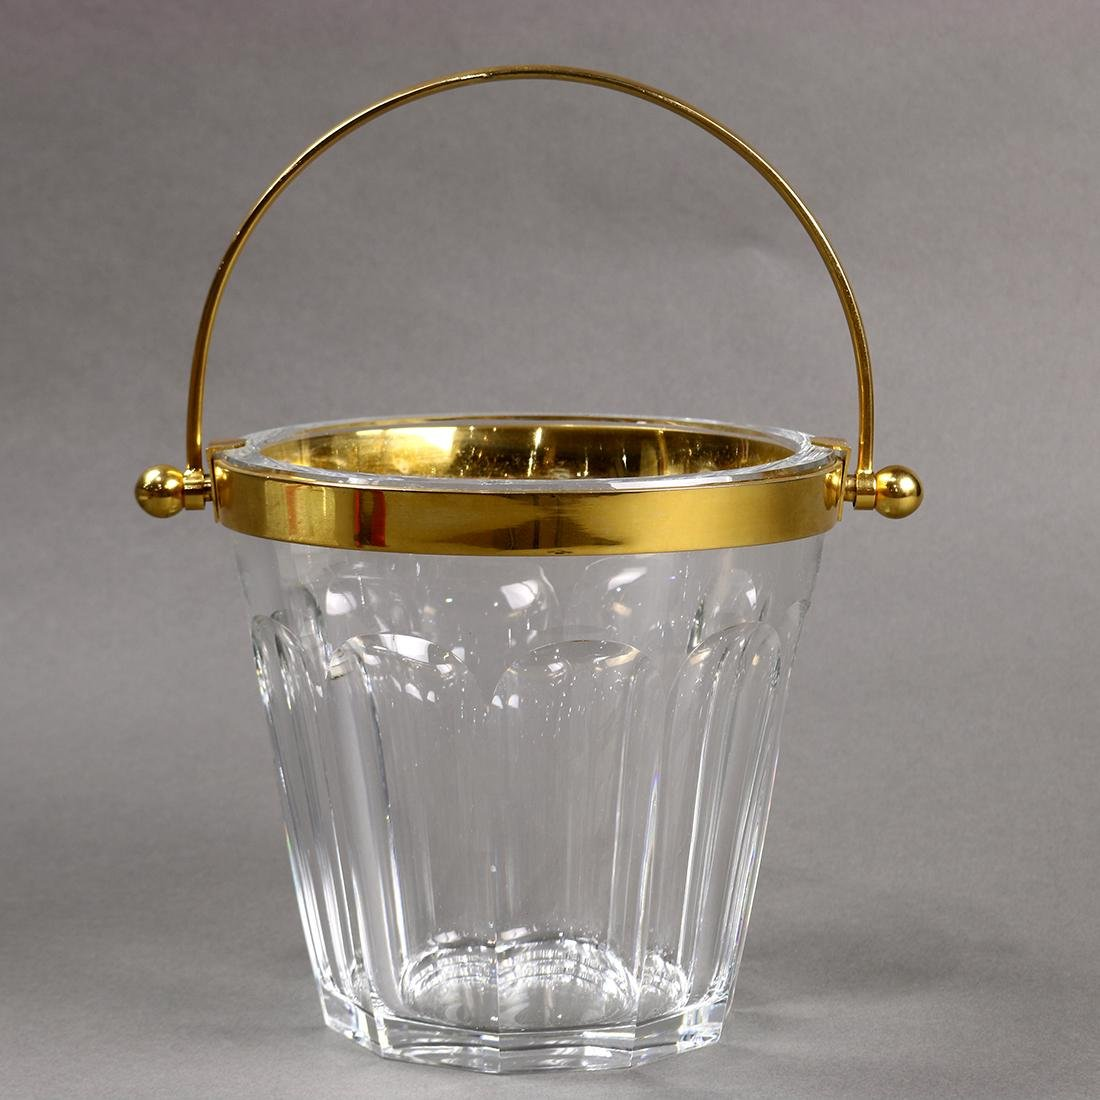 Baccarat crystal ice bucket, the tapering faceted body